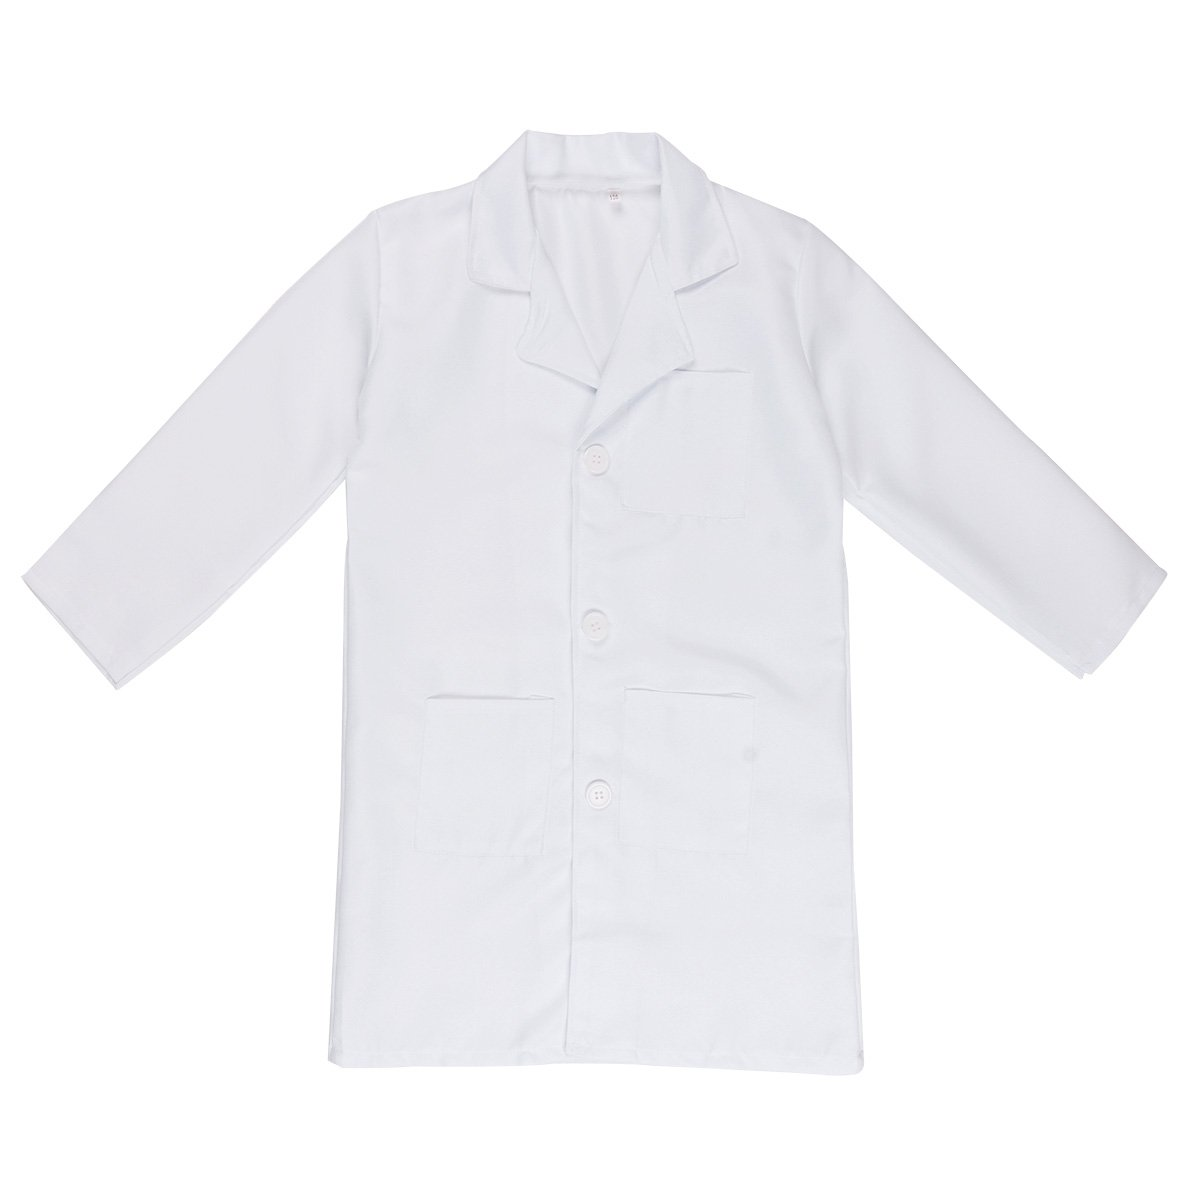 MSemis Childrens Lab Coat Long Sleeves Doctor Costumes Fancy Dress Up Role Play Cosplay White 7-8